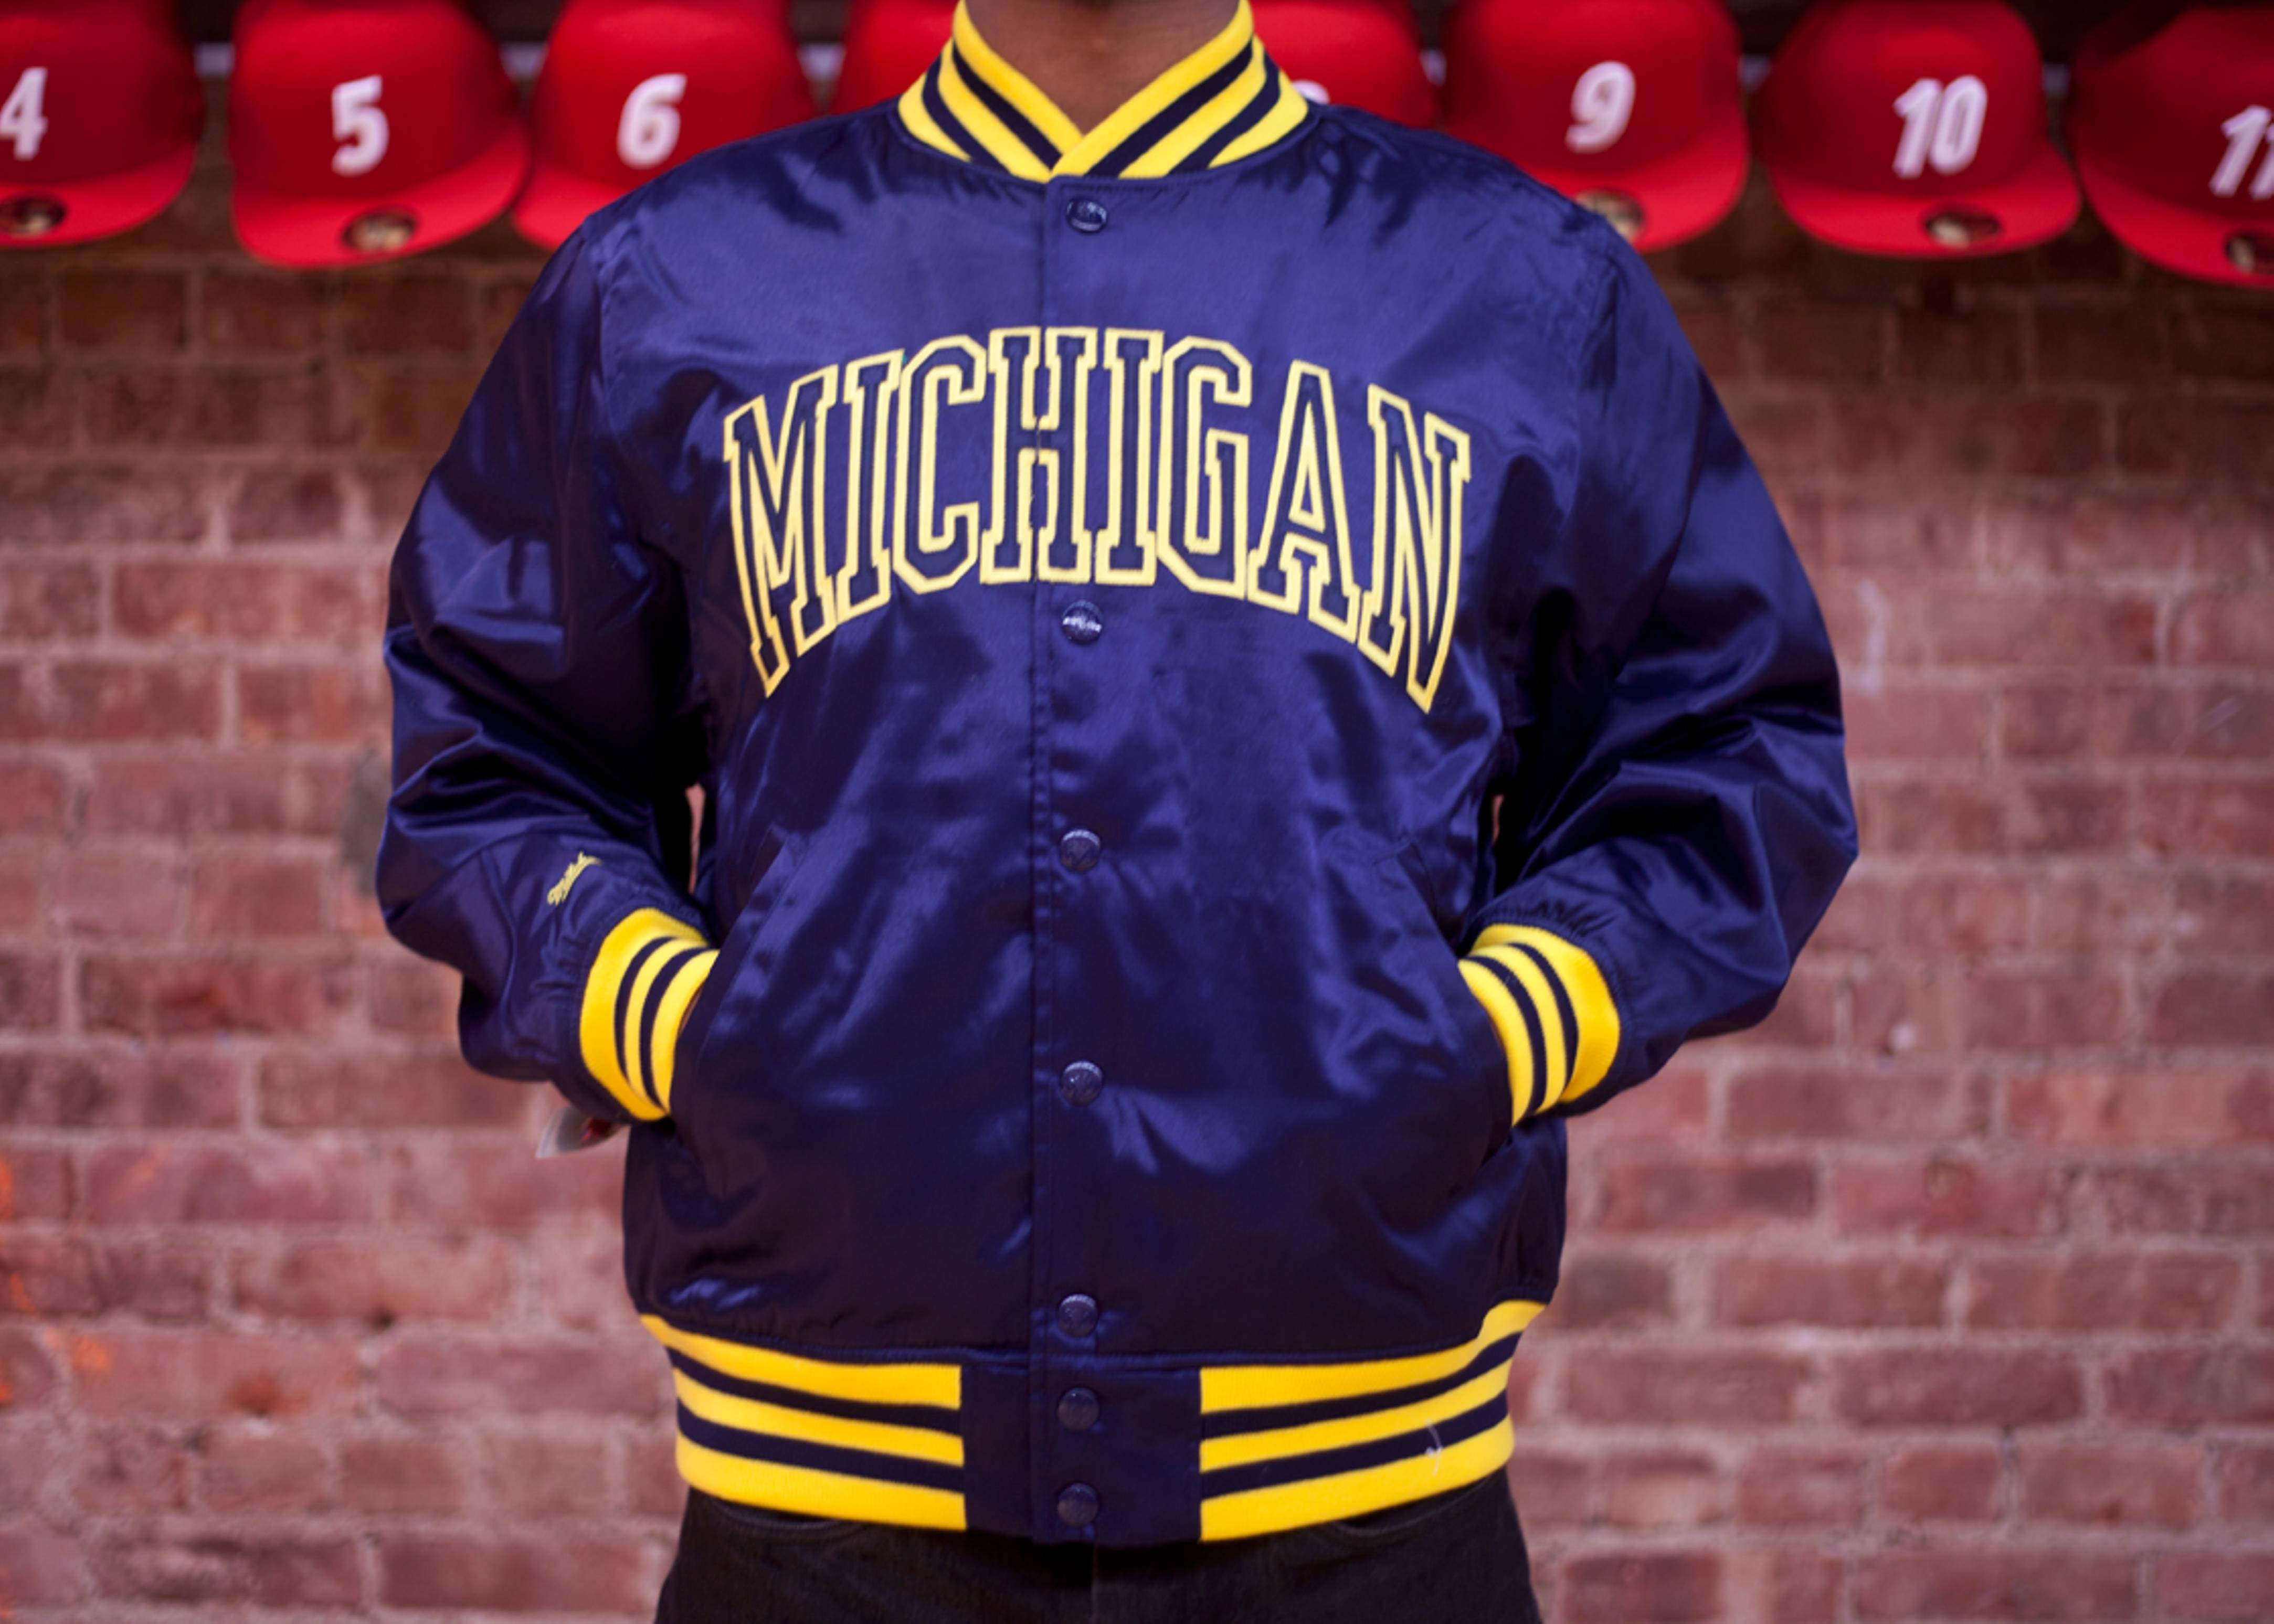 univ. of michigan satin jacket